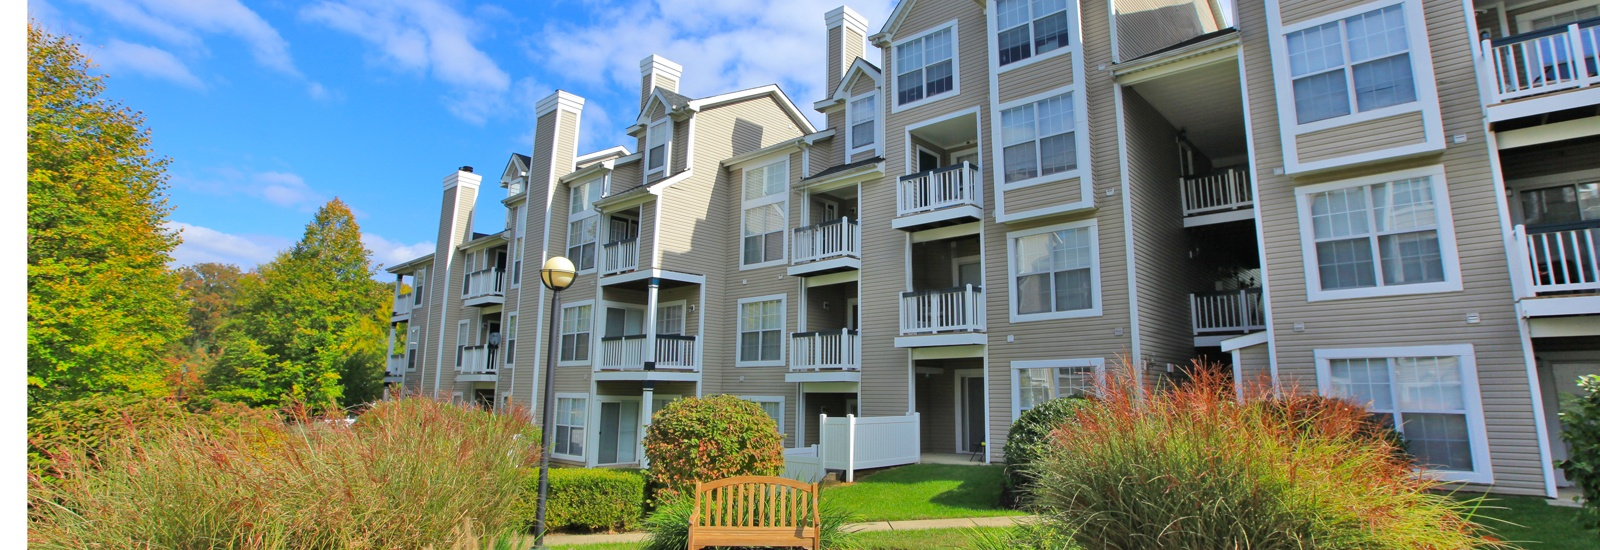 Apartments in Crofton MD